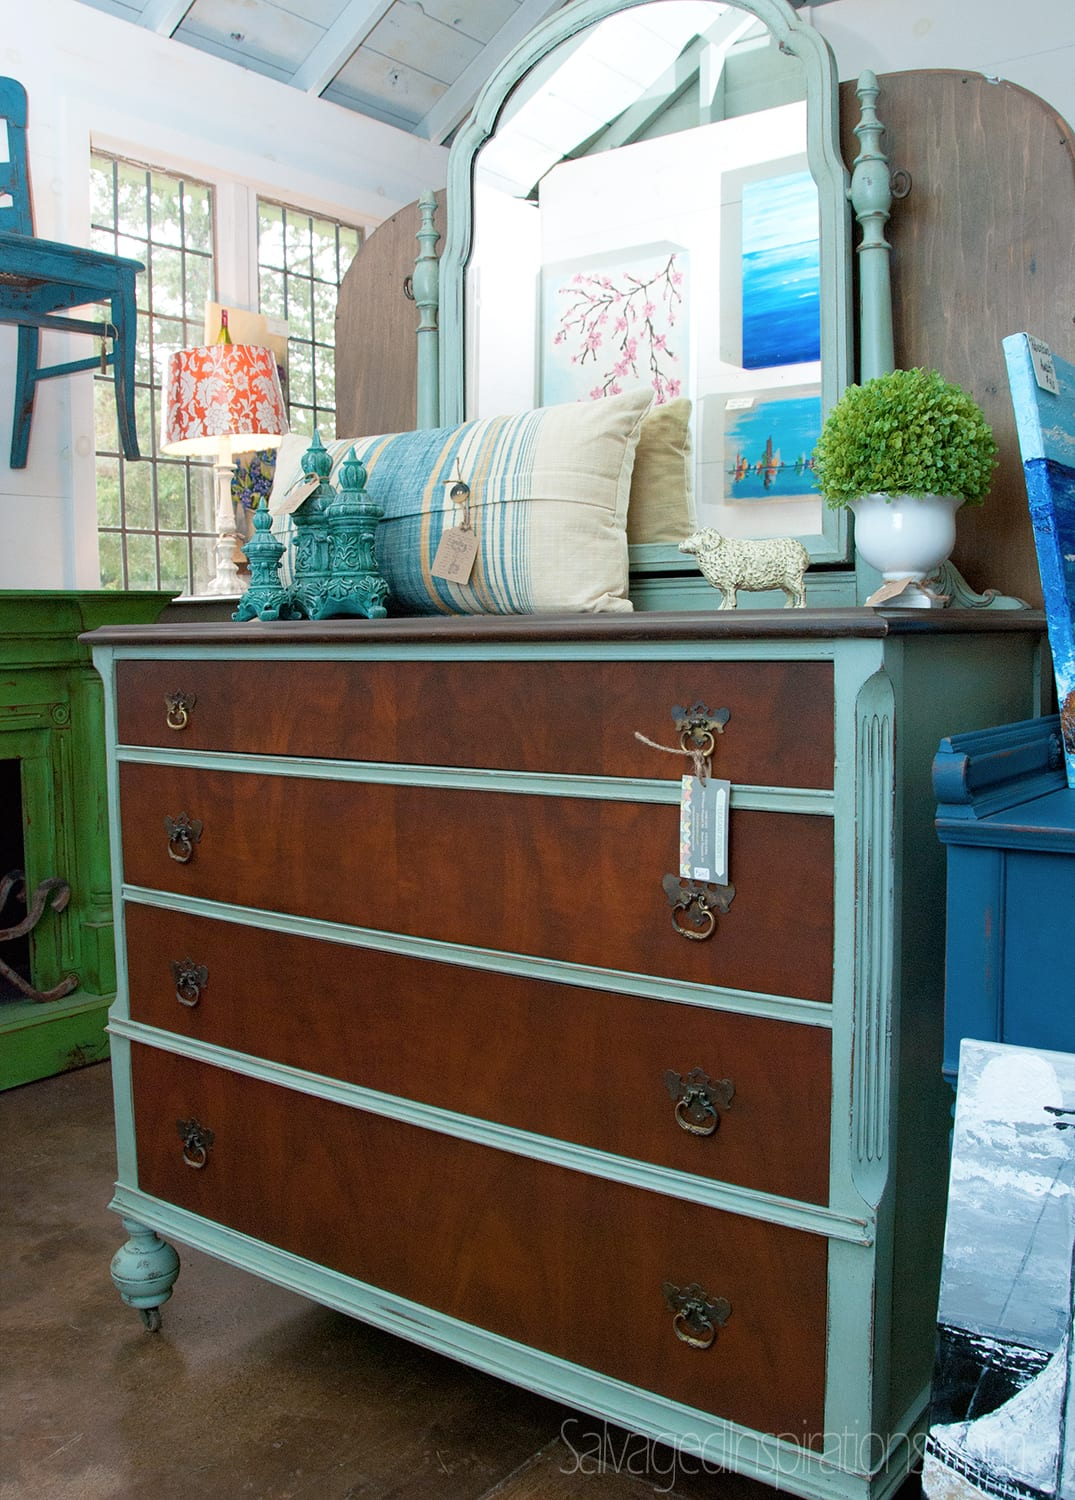 Pleasant-Pickins-Painted-and-Stained-Dresser